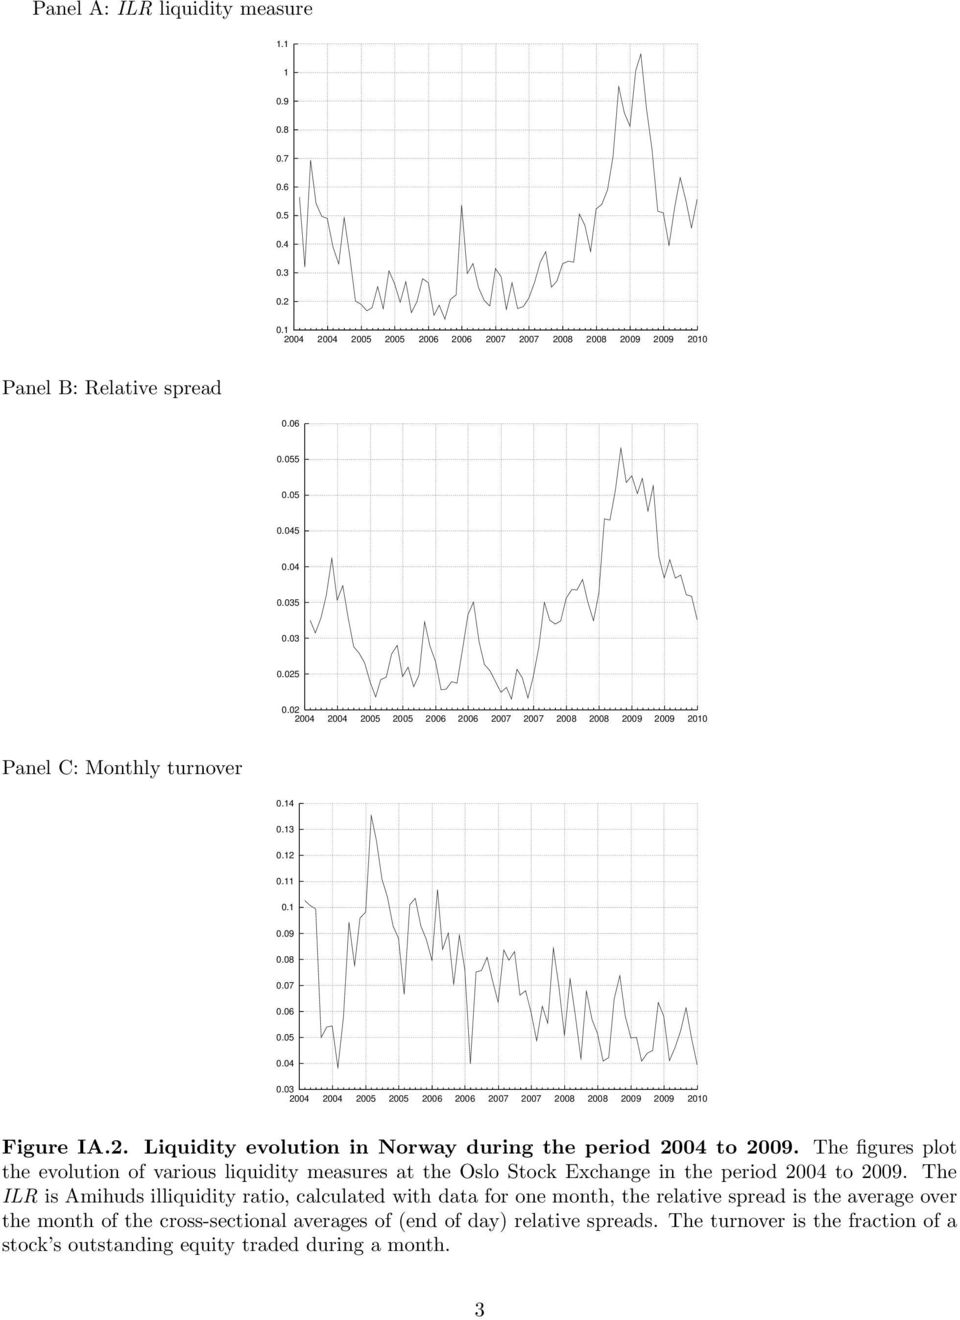 03 2004 2004 2005 2005 2006 2006 2007 2007 2008 2008 2009 2009 2010 Figure IA.2. Liquidity evolution in Norway during the period 2004 to 2009.